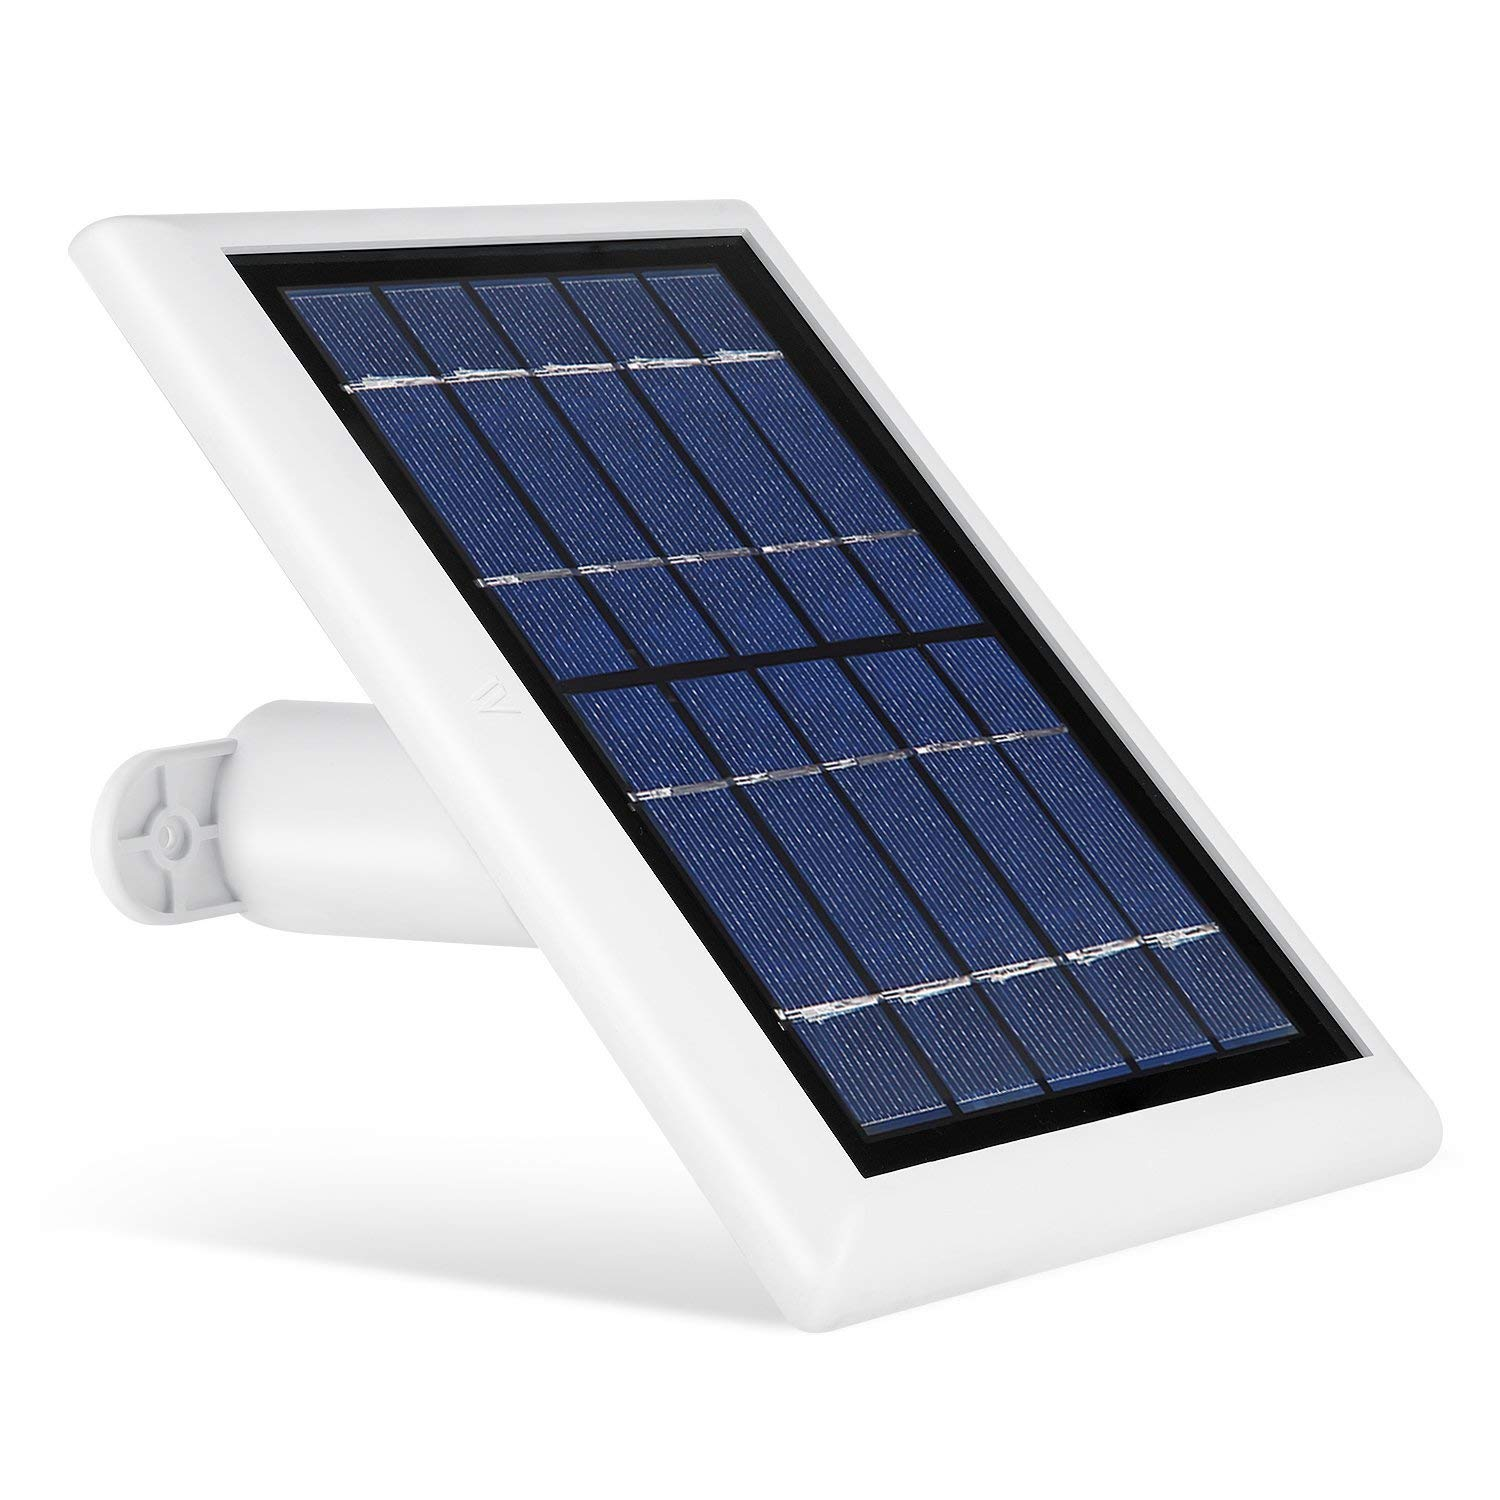 Solar Panel Compatible with Arlo Pro, Arlo Pro 2, Arlo GO & Arlo Light, Power Your Arlo Outdoor Camera continuously with Our New Solar Charging Device - by Wasserstein (White) by Wasserstein (Image #1)